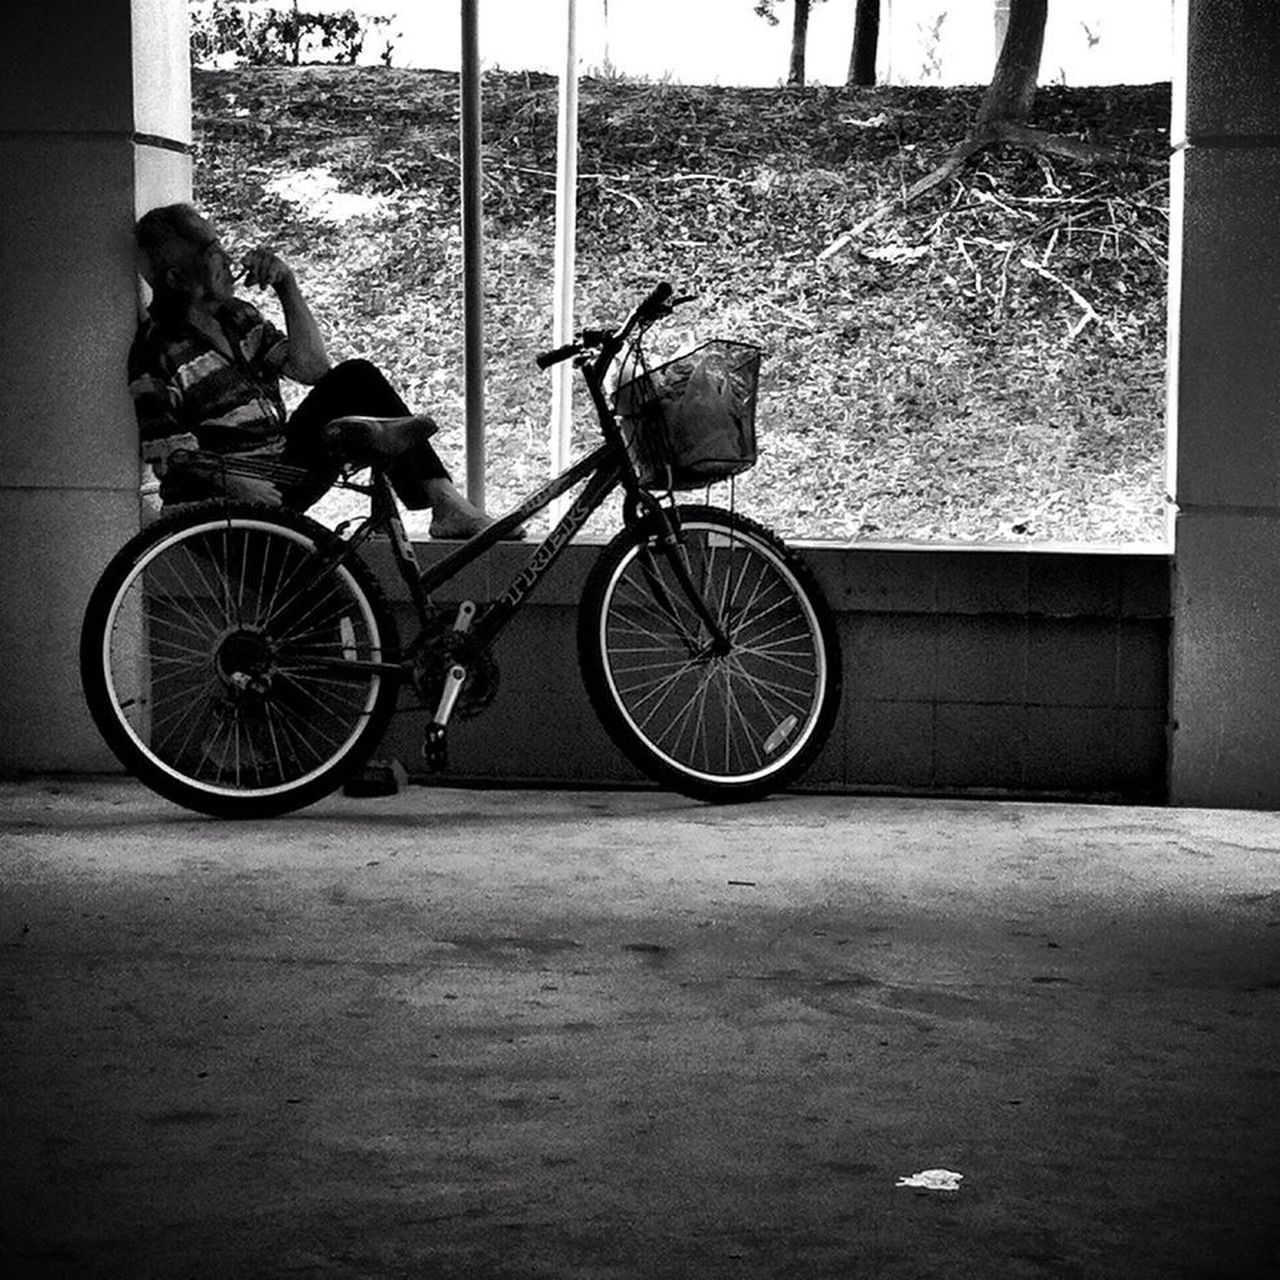 Blackandwhite Streetphotography Streetphoto_bw Street Photography People B&W Portrait Old Man Smoking Resting Bicycle Void Deck